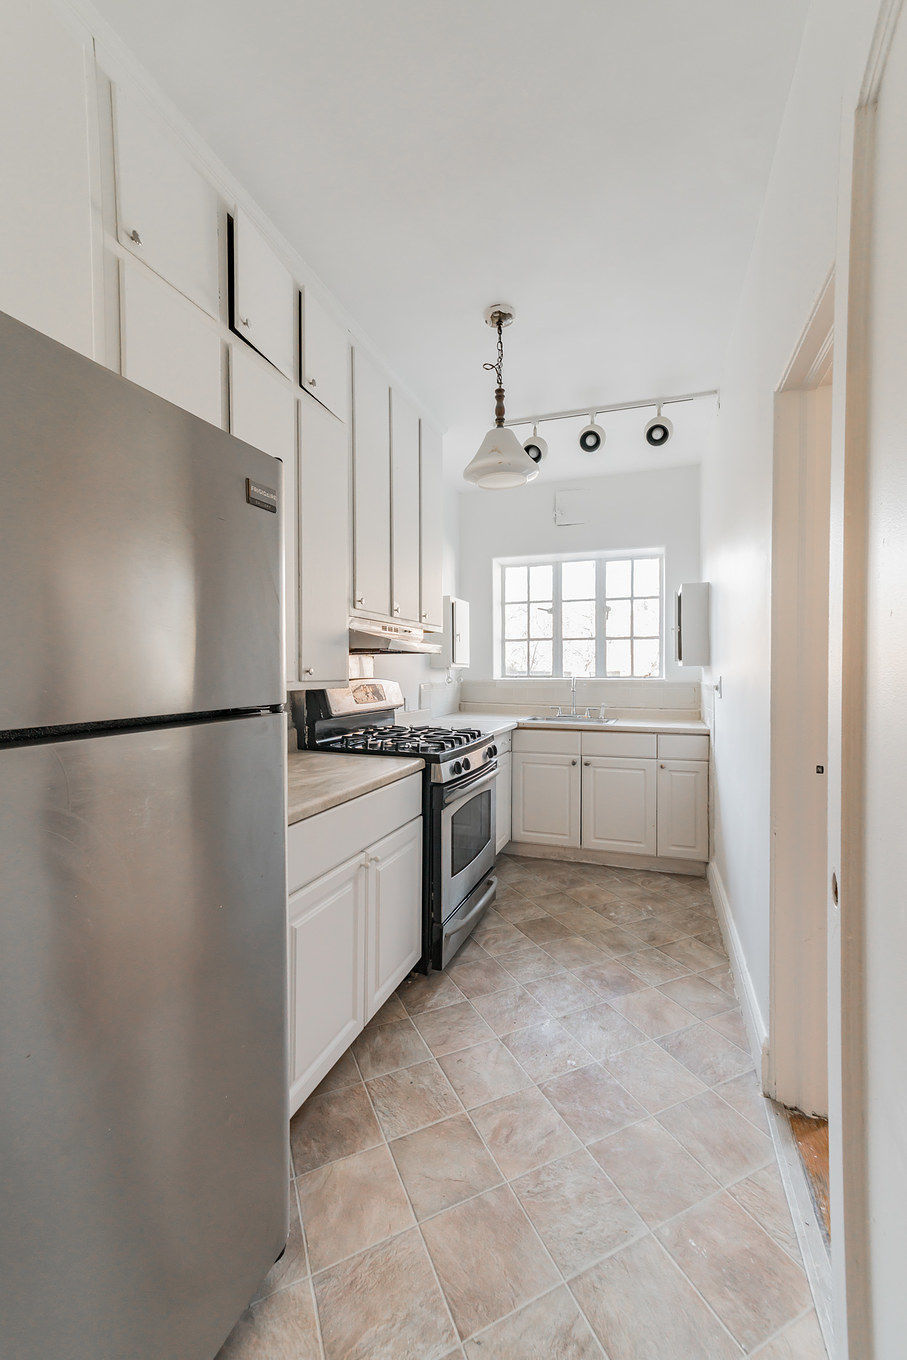 Big Bold Vacant 5 Unit Semi-Attached Limestone In Prime Crown Heights Photo 11 - BROWNSTONER-LISTING-97a538bd42ede9f4edc2fc244def62e3